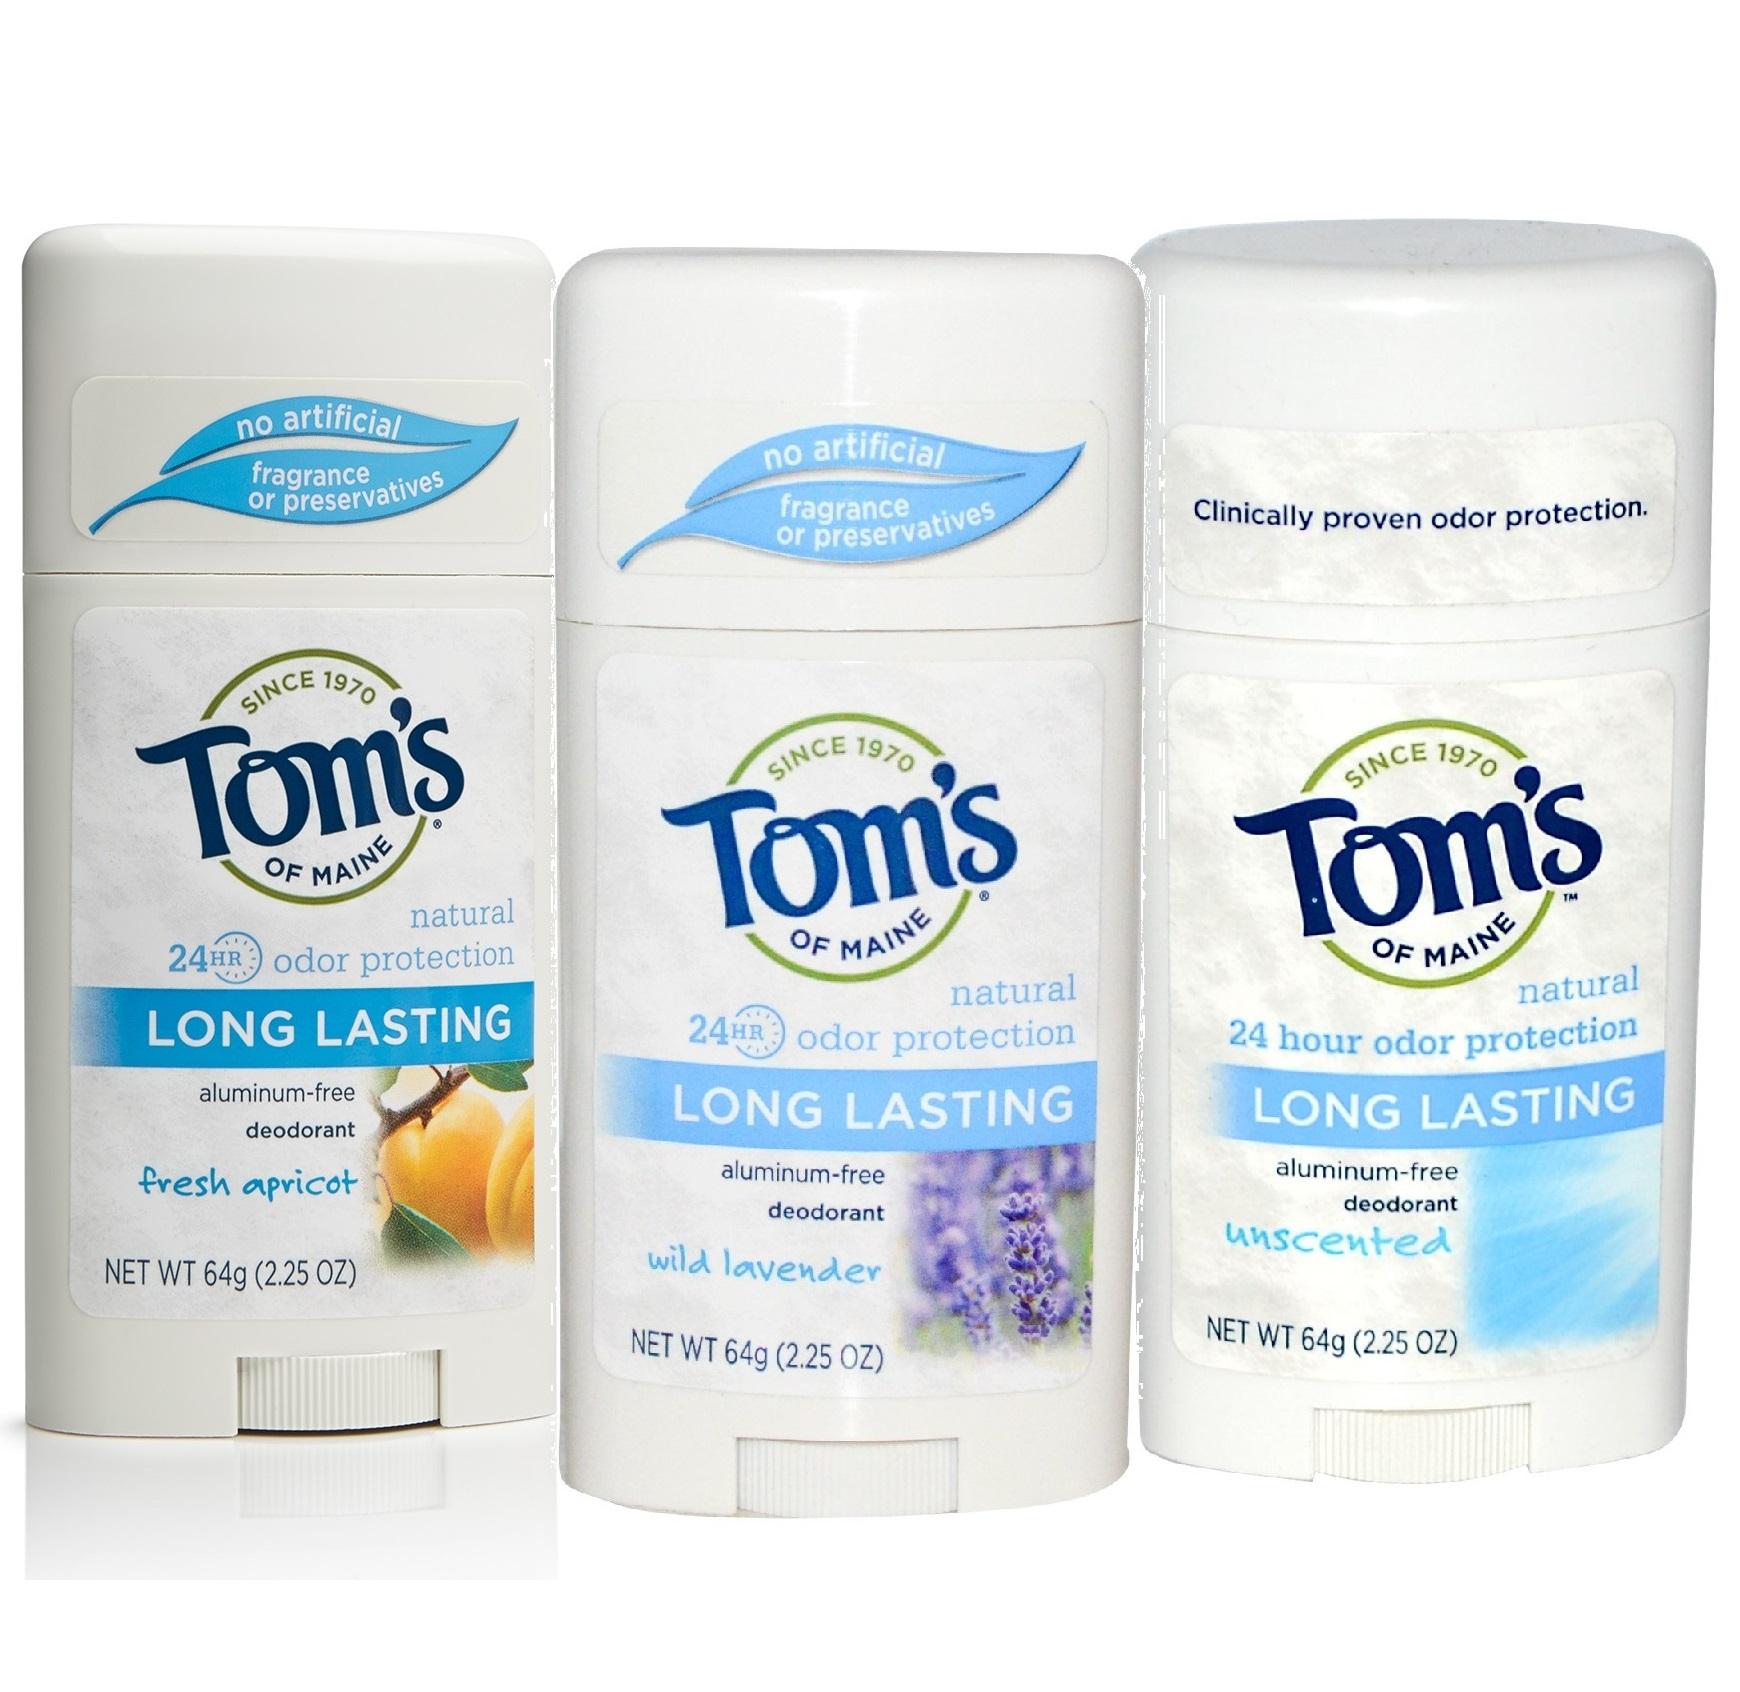 Tom's of Maine Long-Lasting Aluminum-Free Deodorant